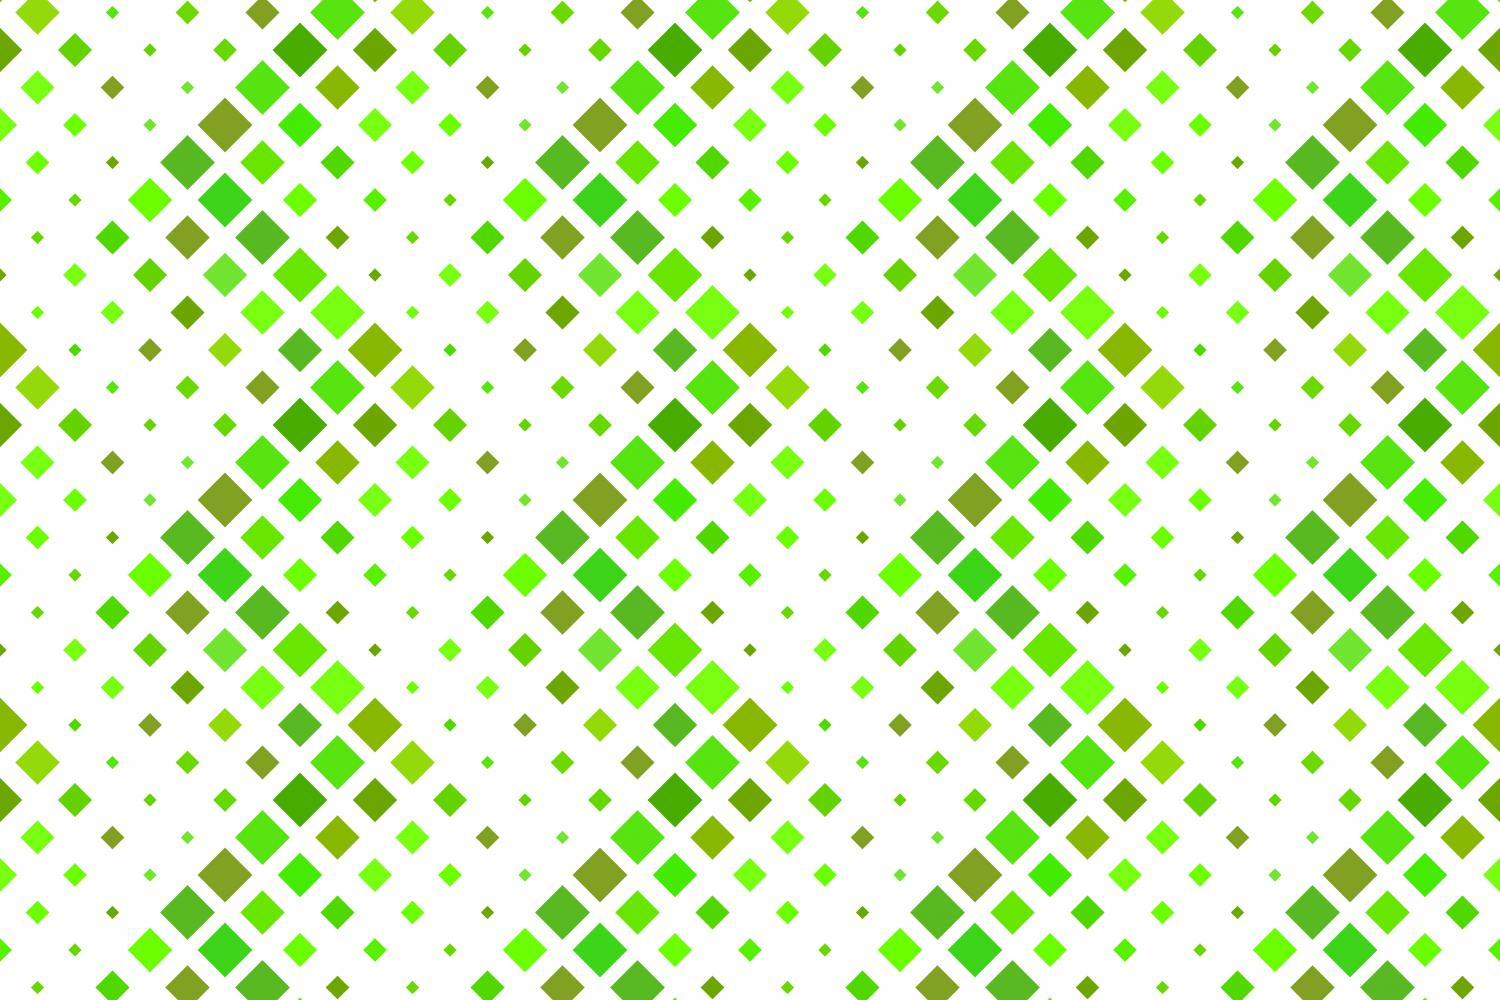 24 Seamless Green Square Patterns example image 6